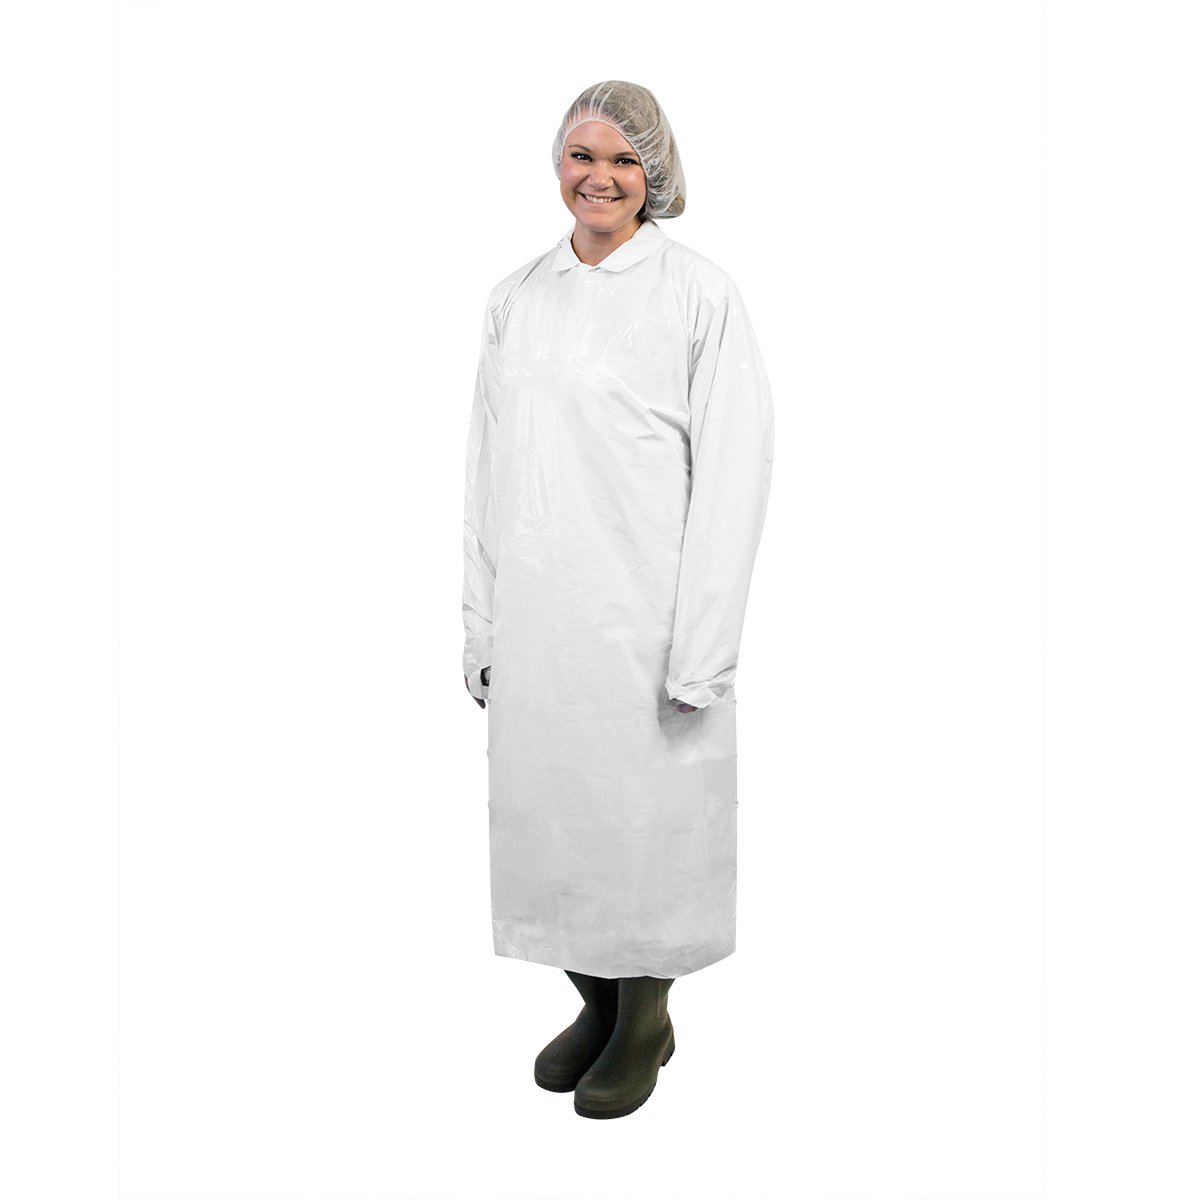 UltraSource 450064 Disposable Polyethylene Gowns, 49